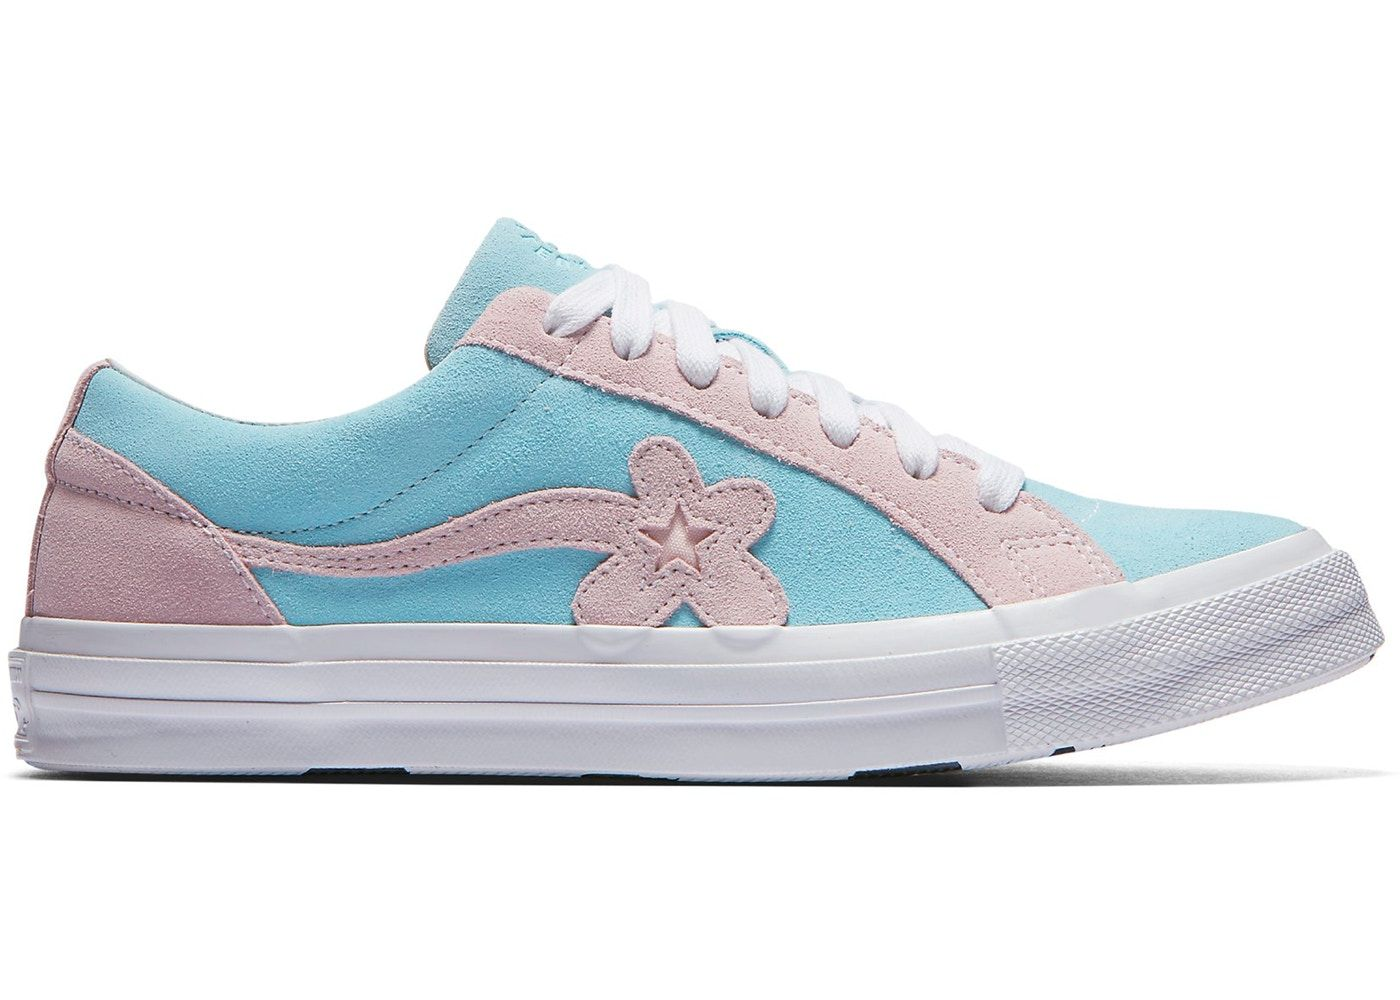 97df30ccd5b118 Converse One Star Ox Tyler the Creator Golf Le Fleur Light Blue Pink ...